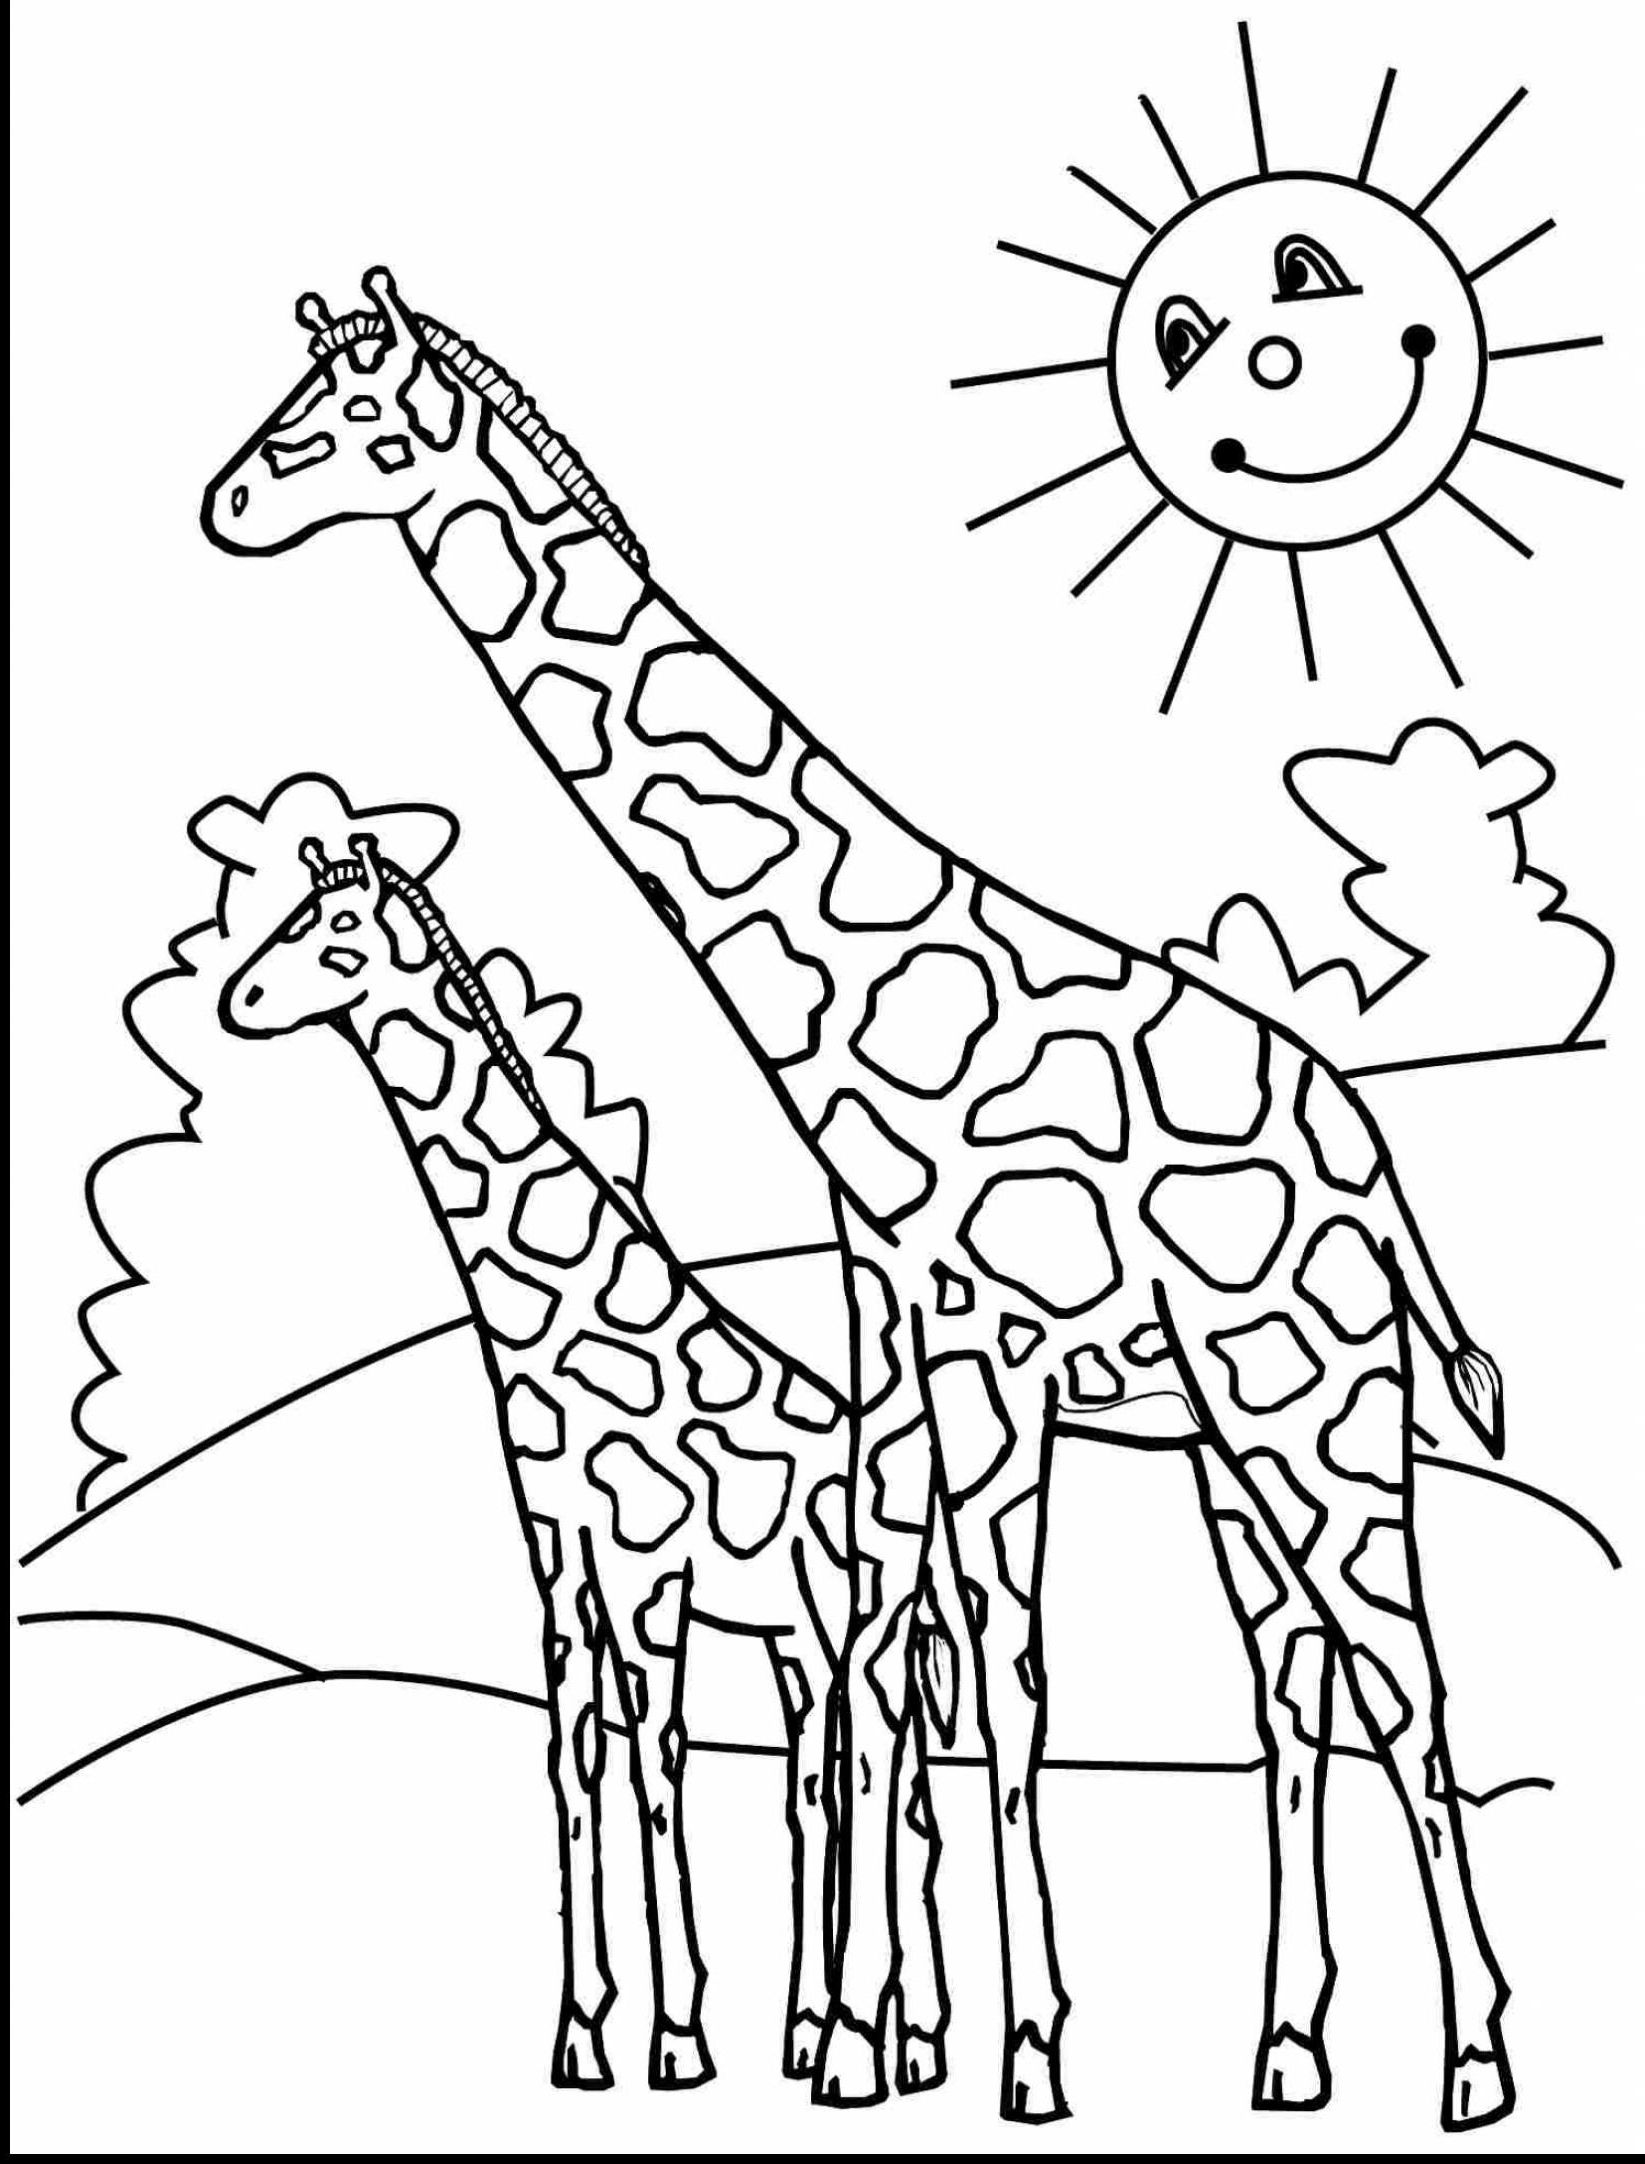 Giraffe Coloring Book Giraffe Coloring Pages Animal Coloring Pages Printable Christmas Coloring Pages